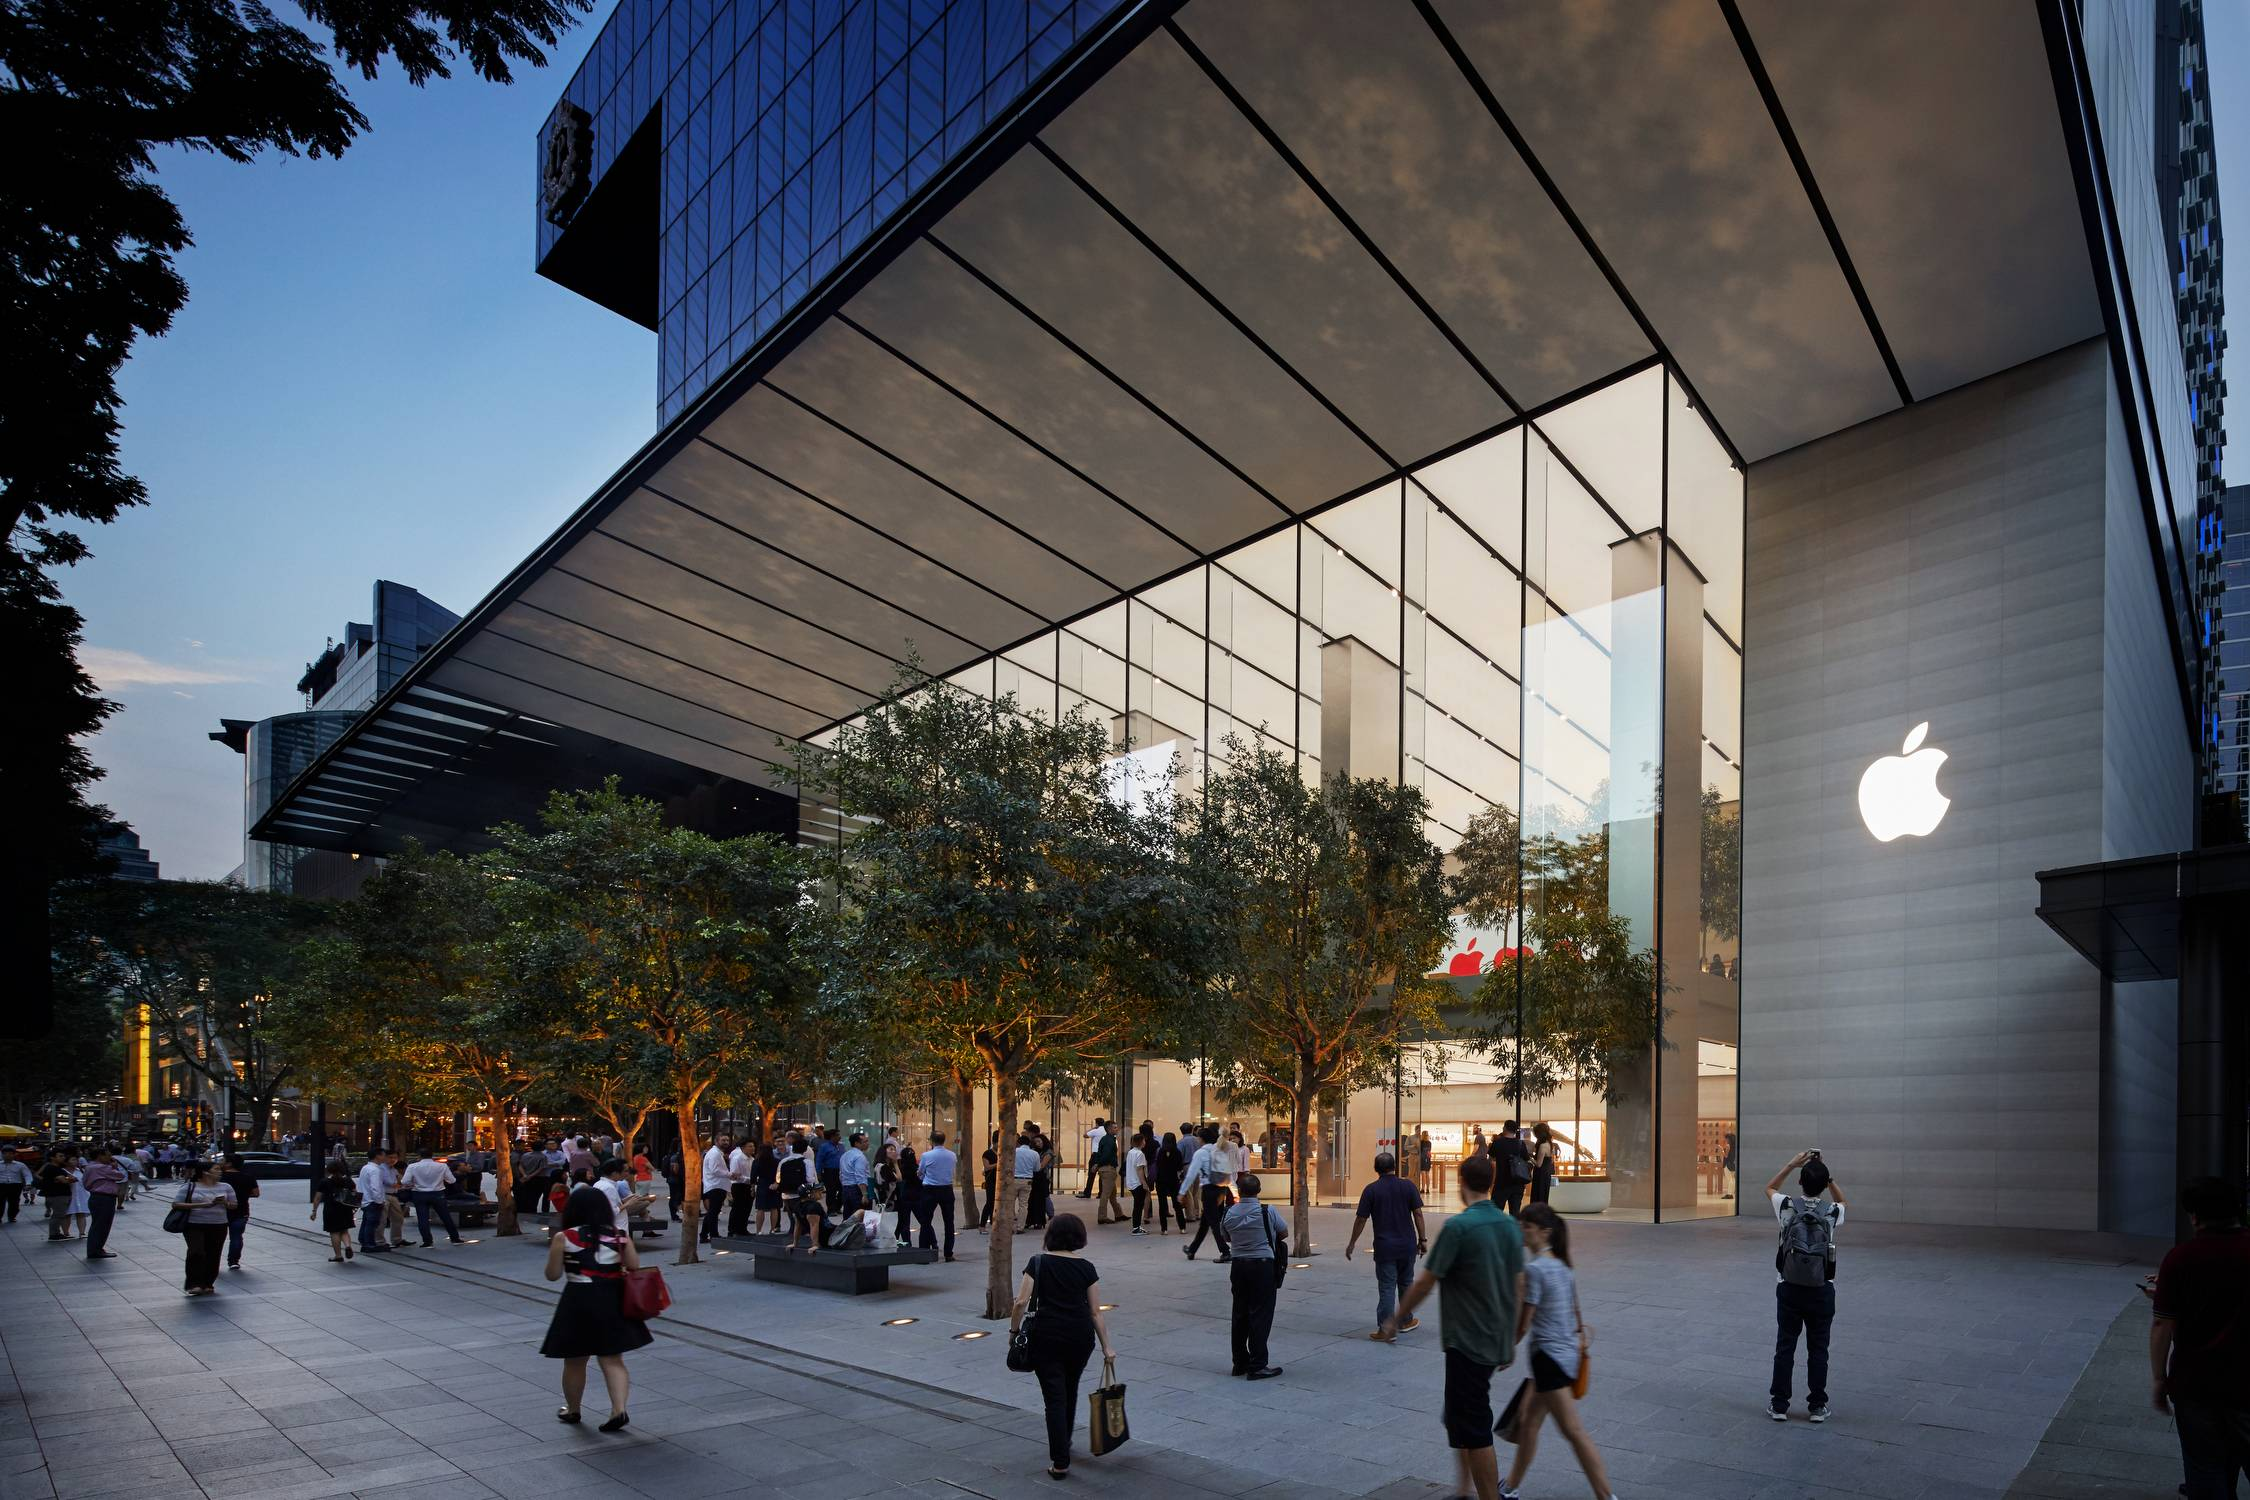 Apple Store at Orchard Road, Singapore.